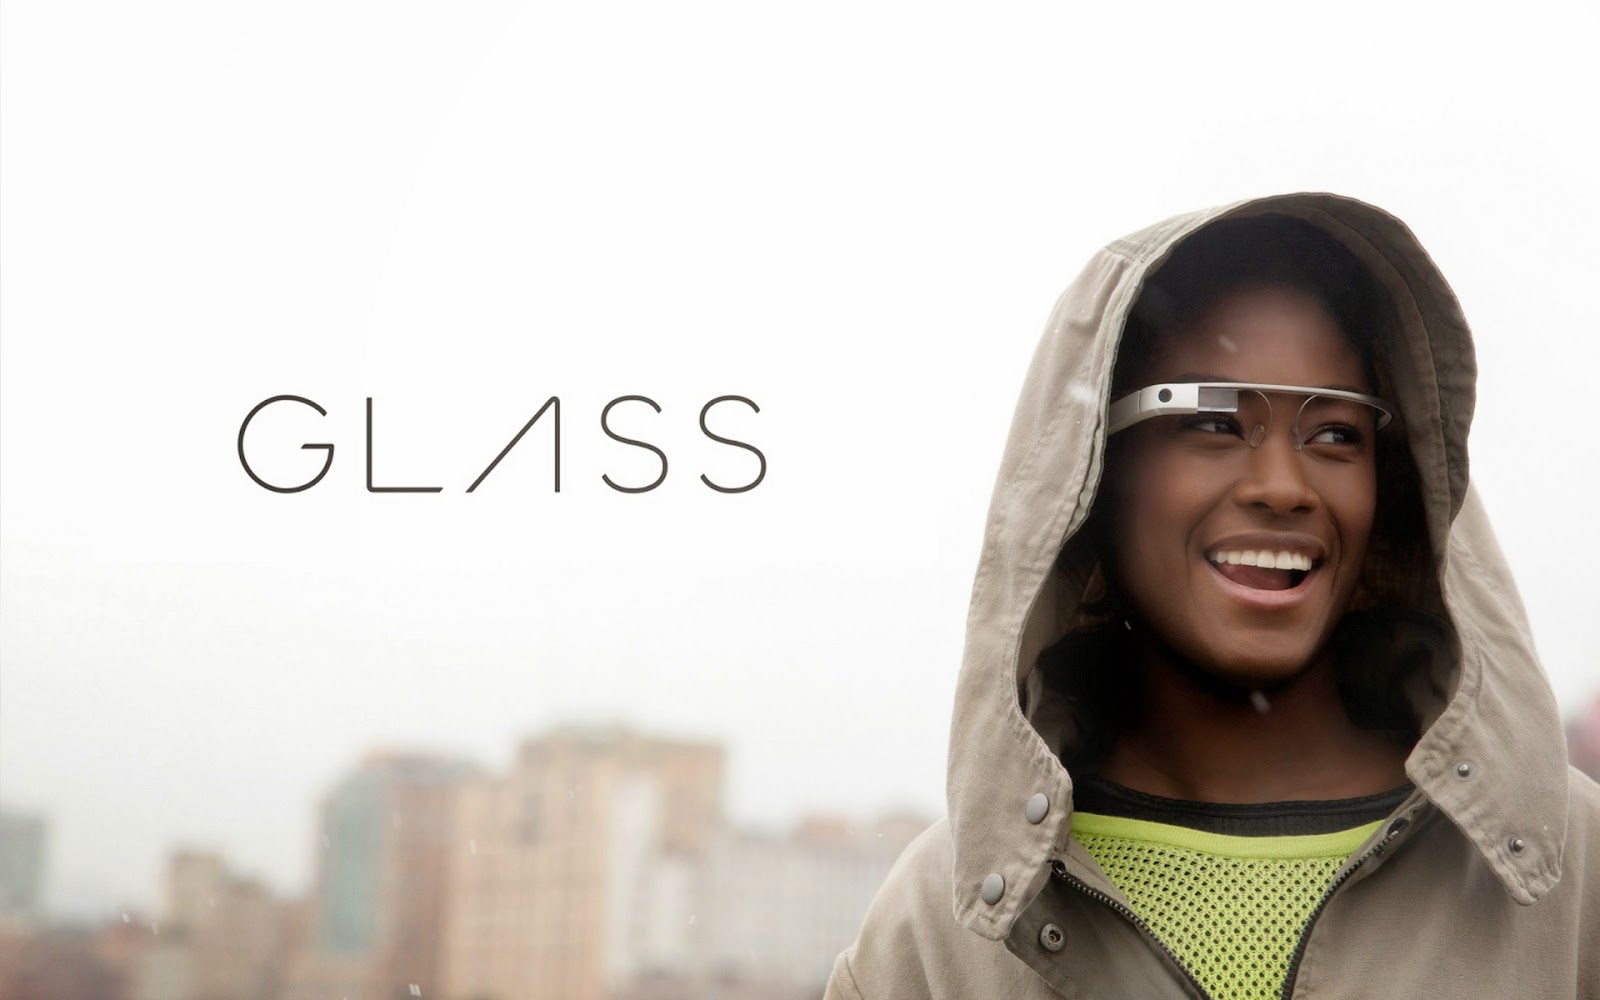 The Google Glass Logo next to a happy Google Glass user.  A metropolitan city is in the background.